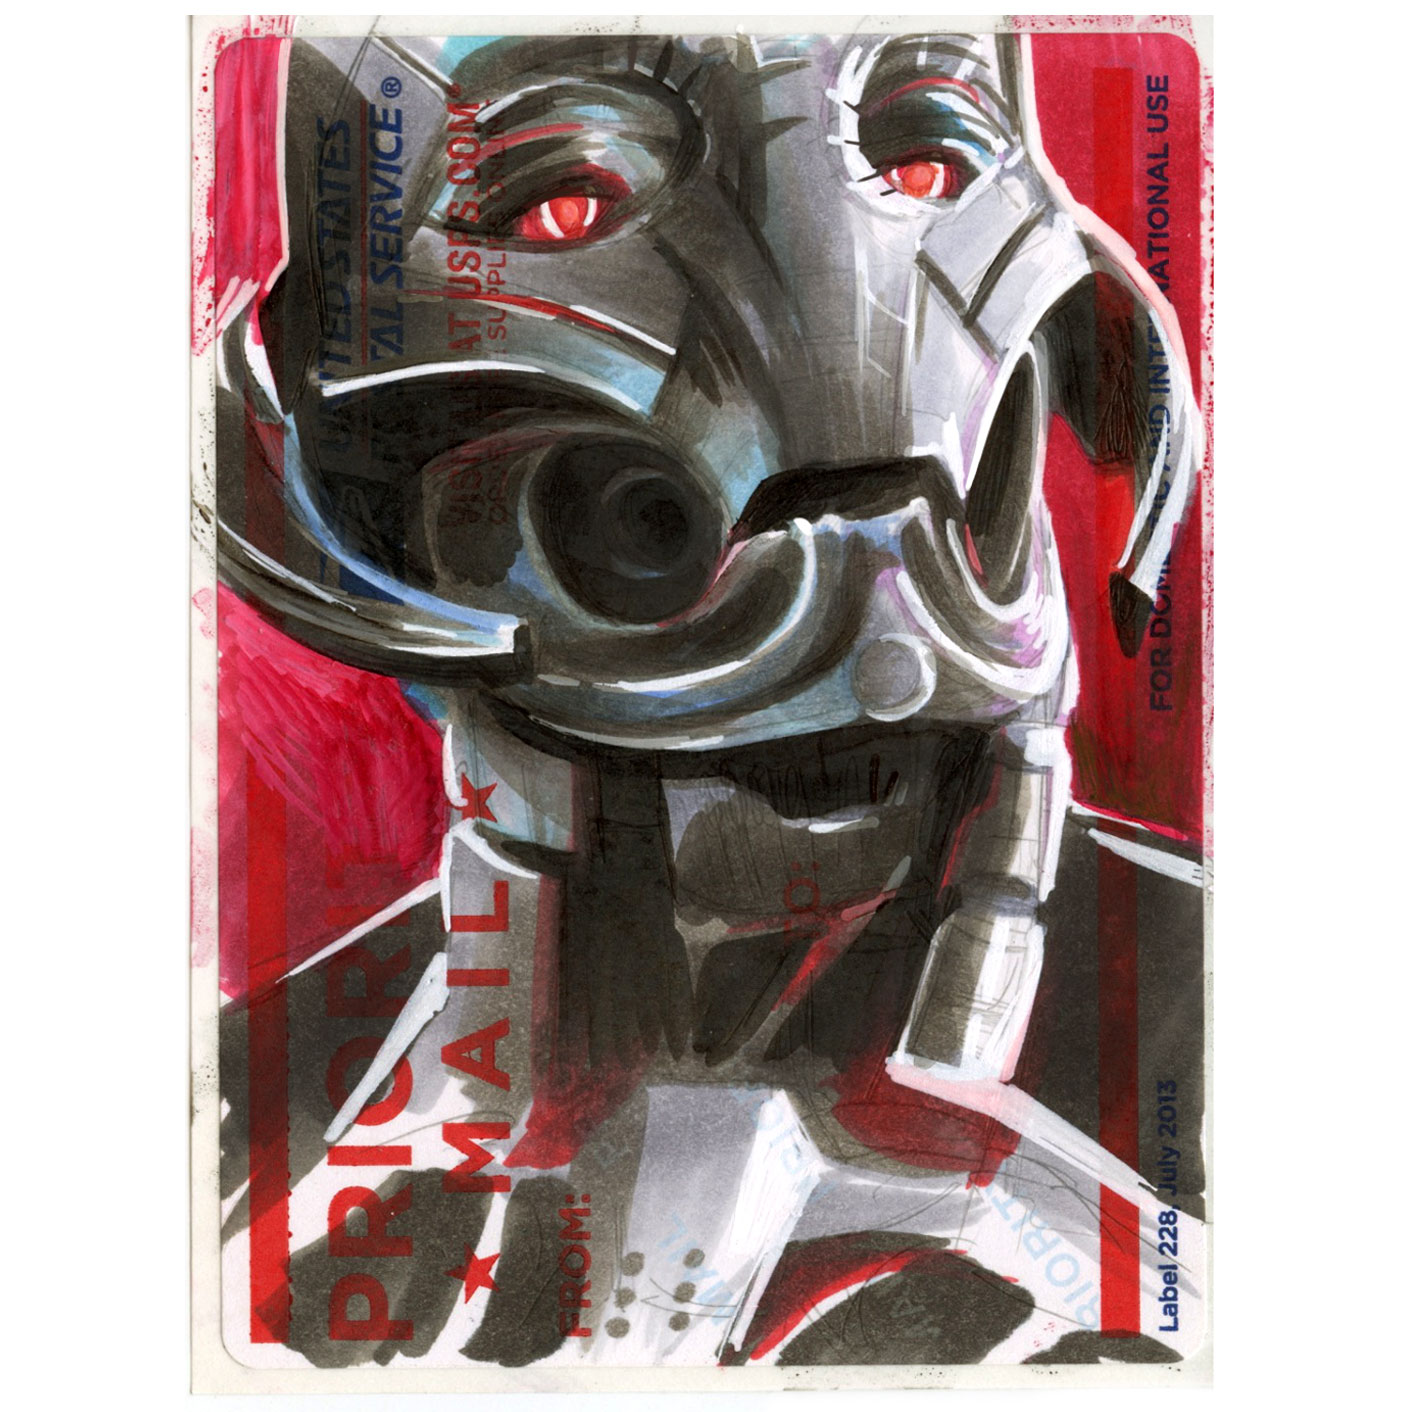 Copic Ultron on a Label 228